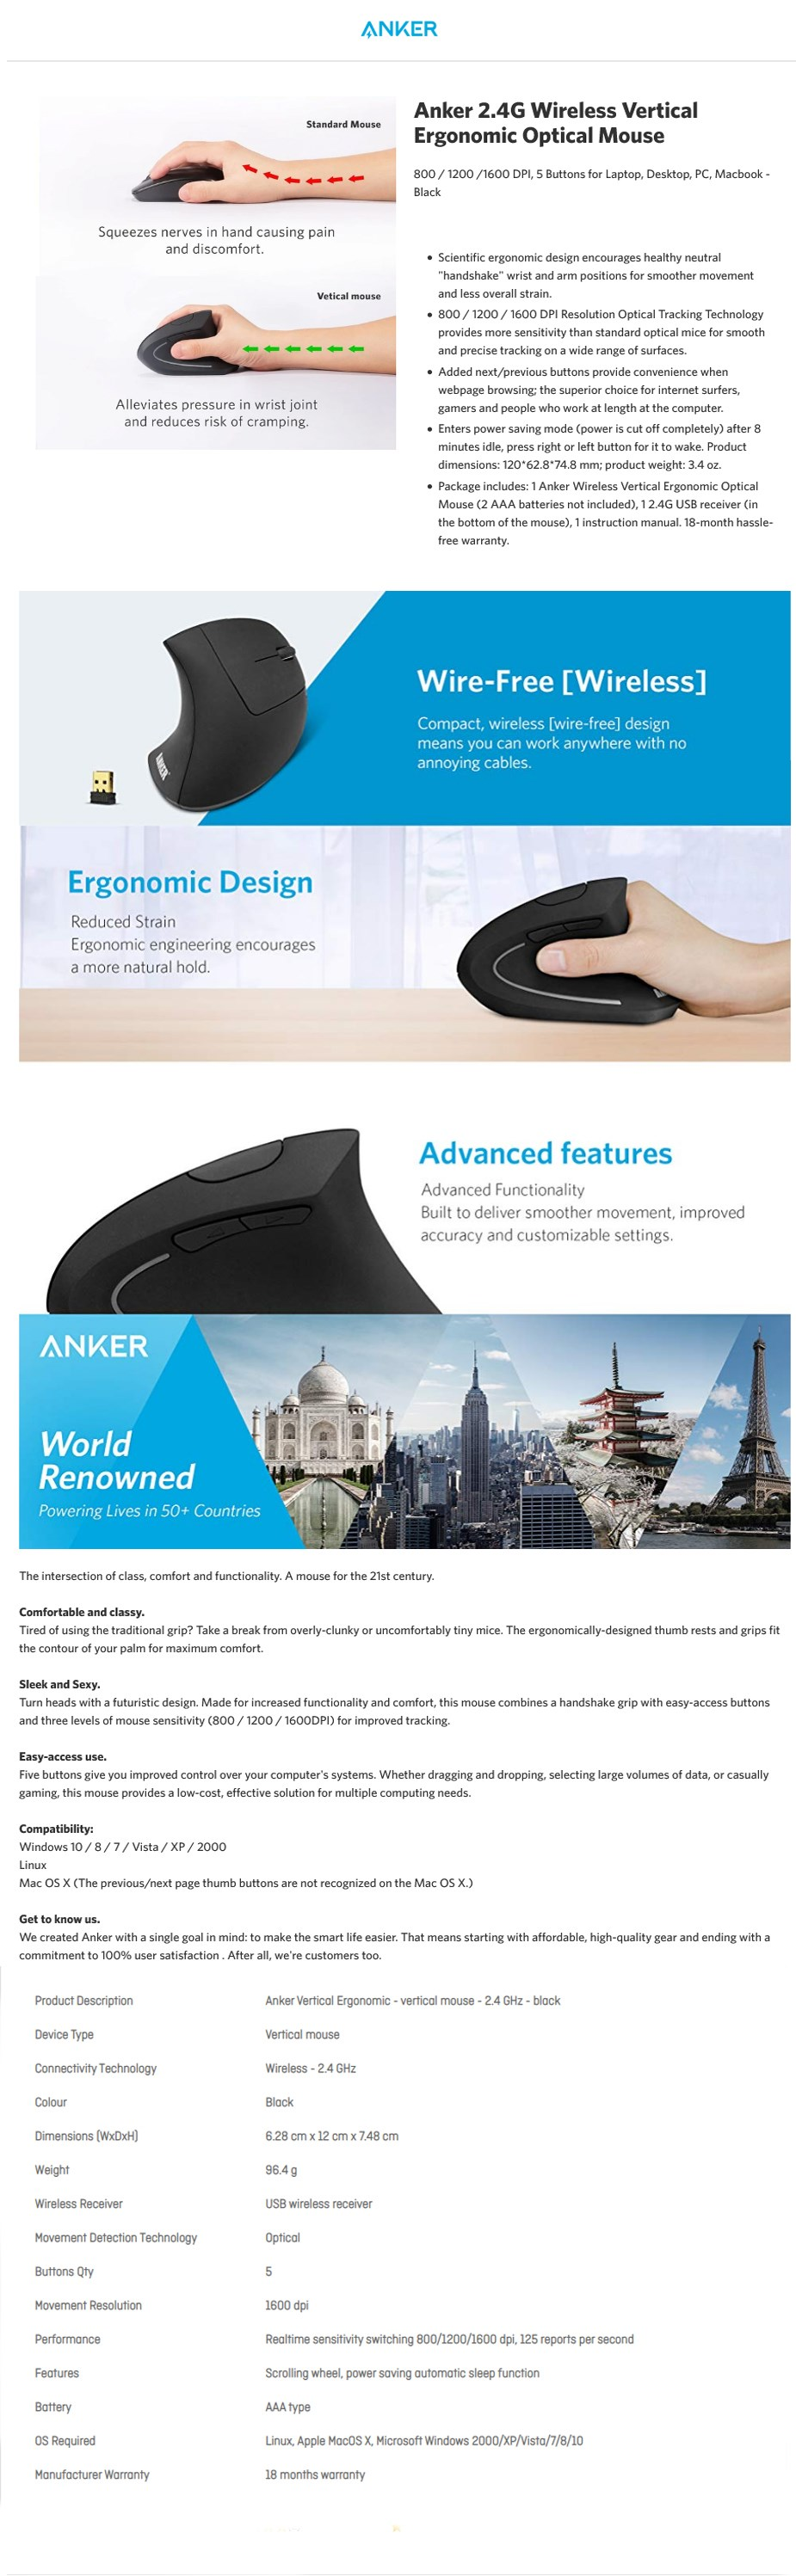 Anker 2.4G Wireless Optical Vertical Ergonomic Mouse - Overview 1